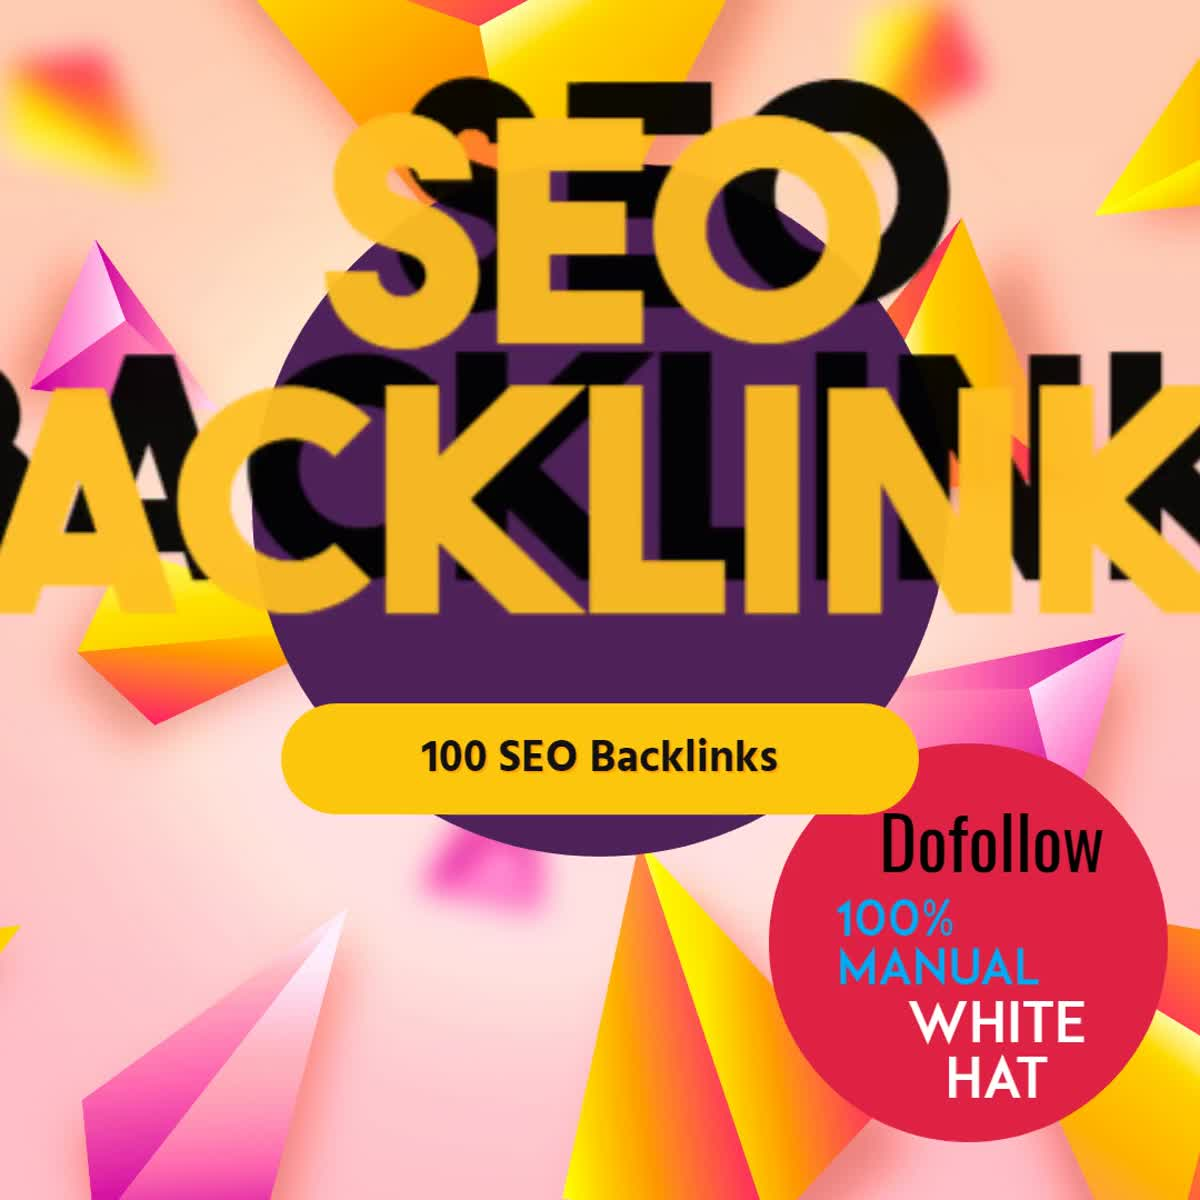 Land your website on Google 1st page with dofollow 70 backlinks manually